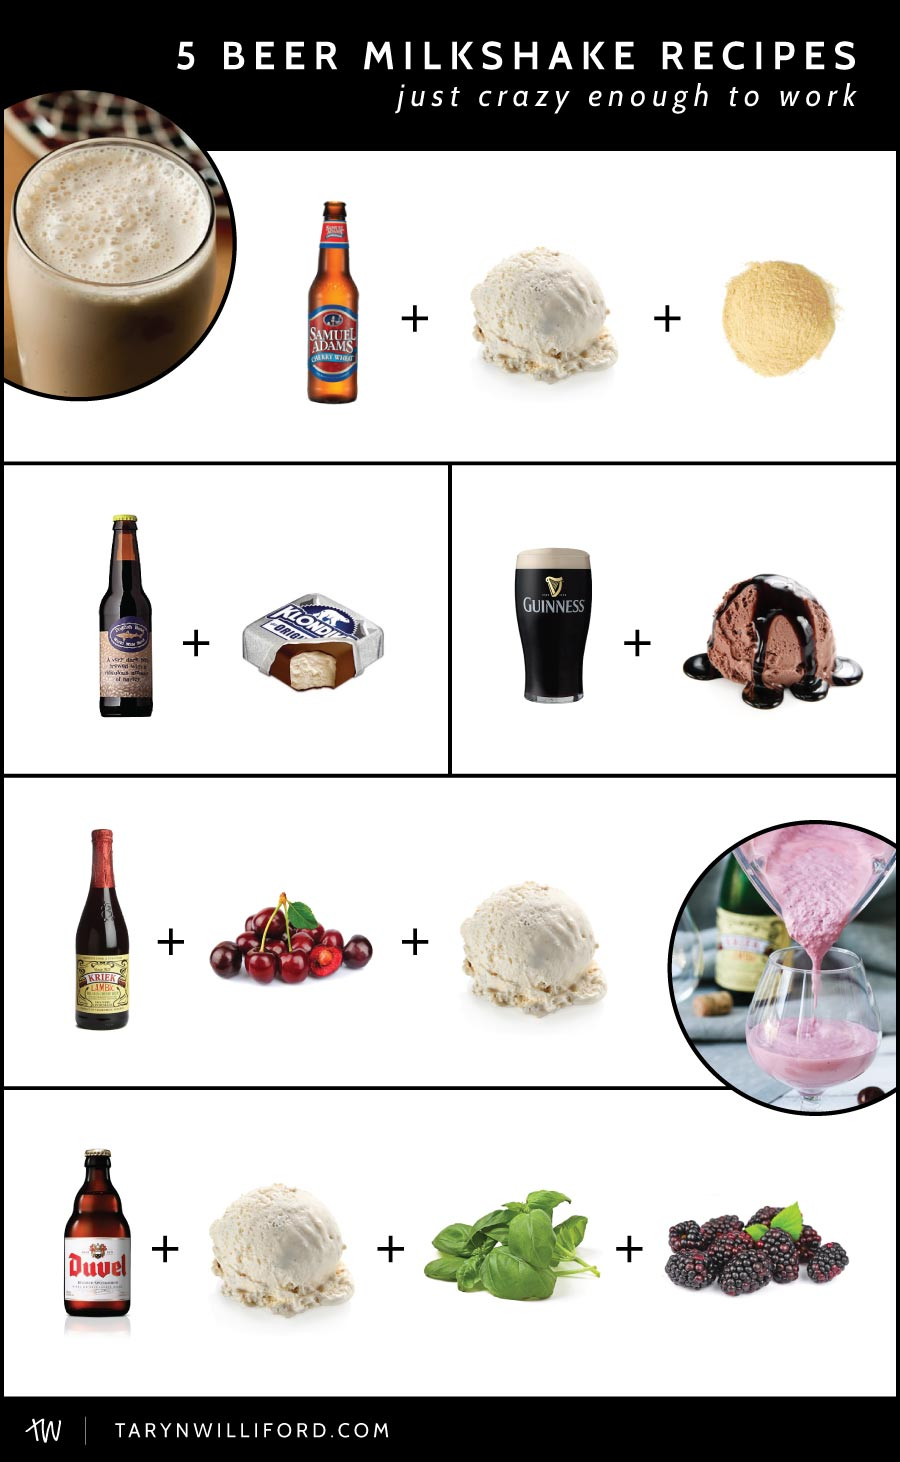 Beer Milkshake Recipes